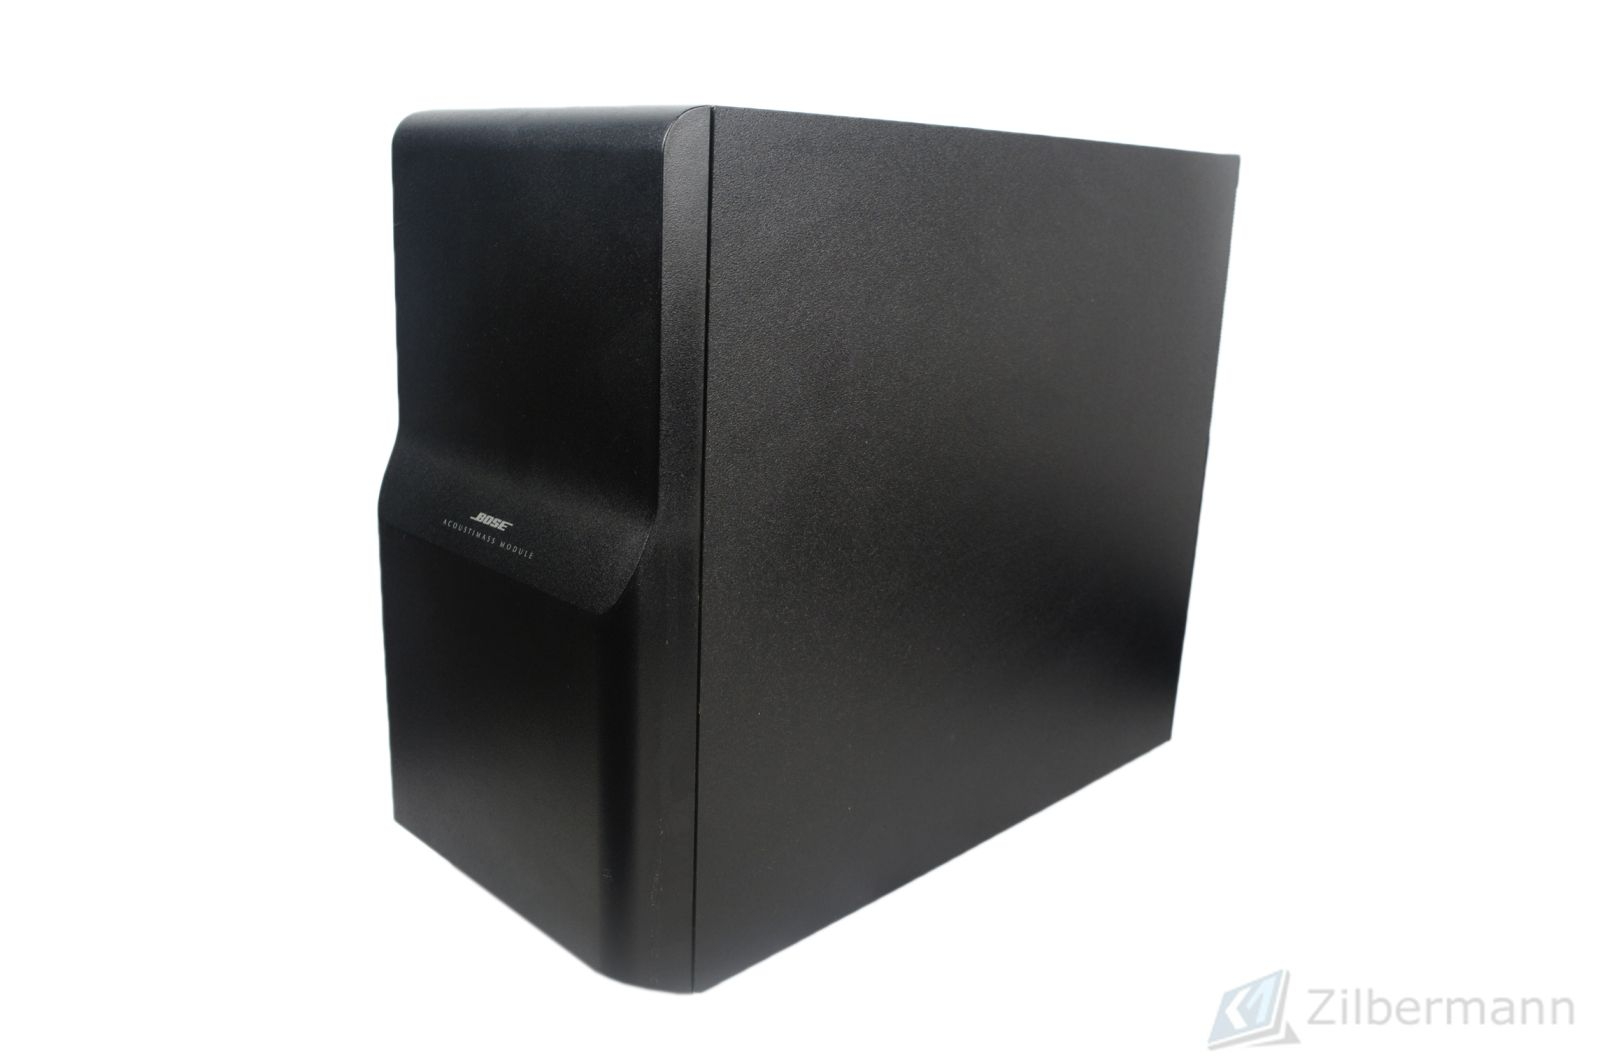 Bose_Acoustimass_6_Series_II_Heimkino-System_Subwoofer_04